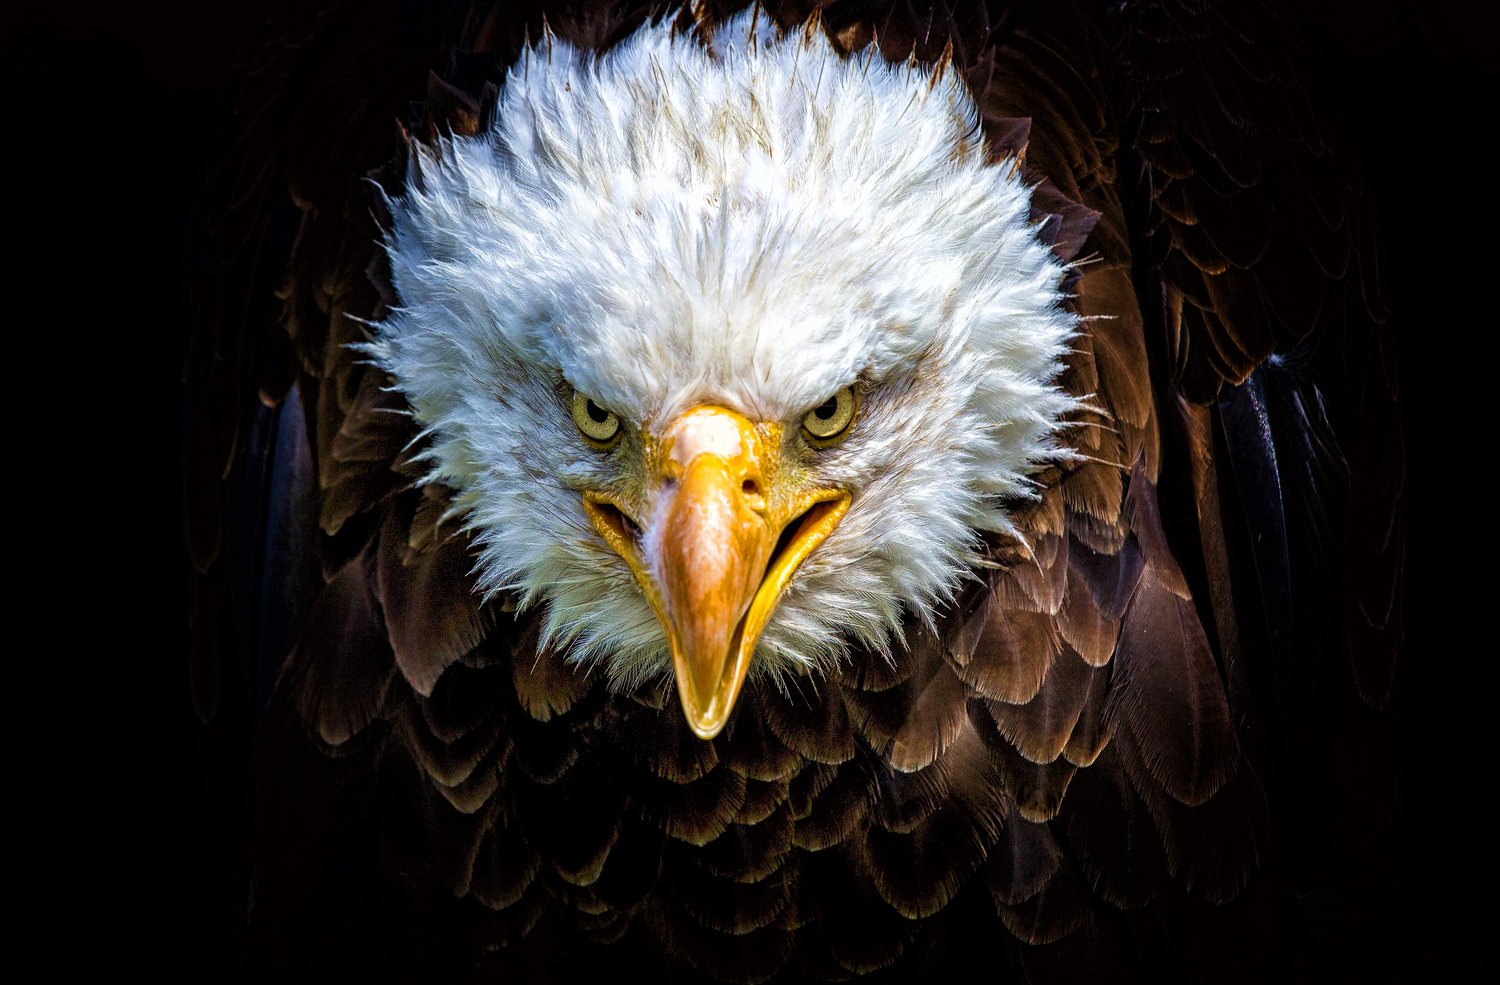 Angry north american bald eagle by Stefano Venturi